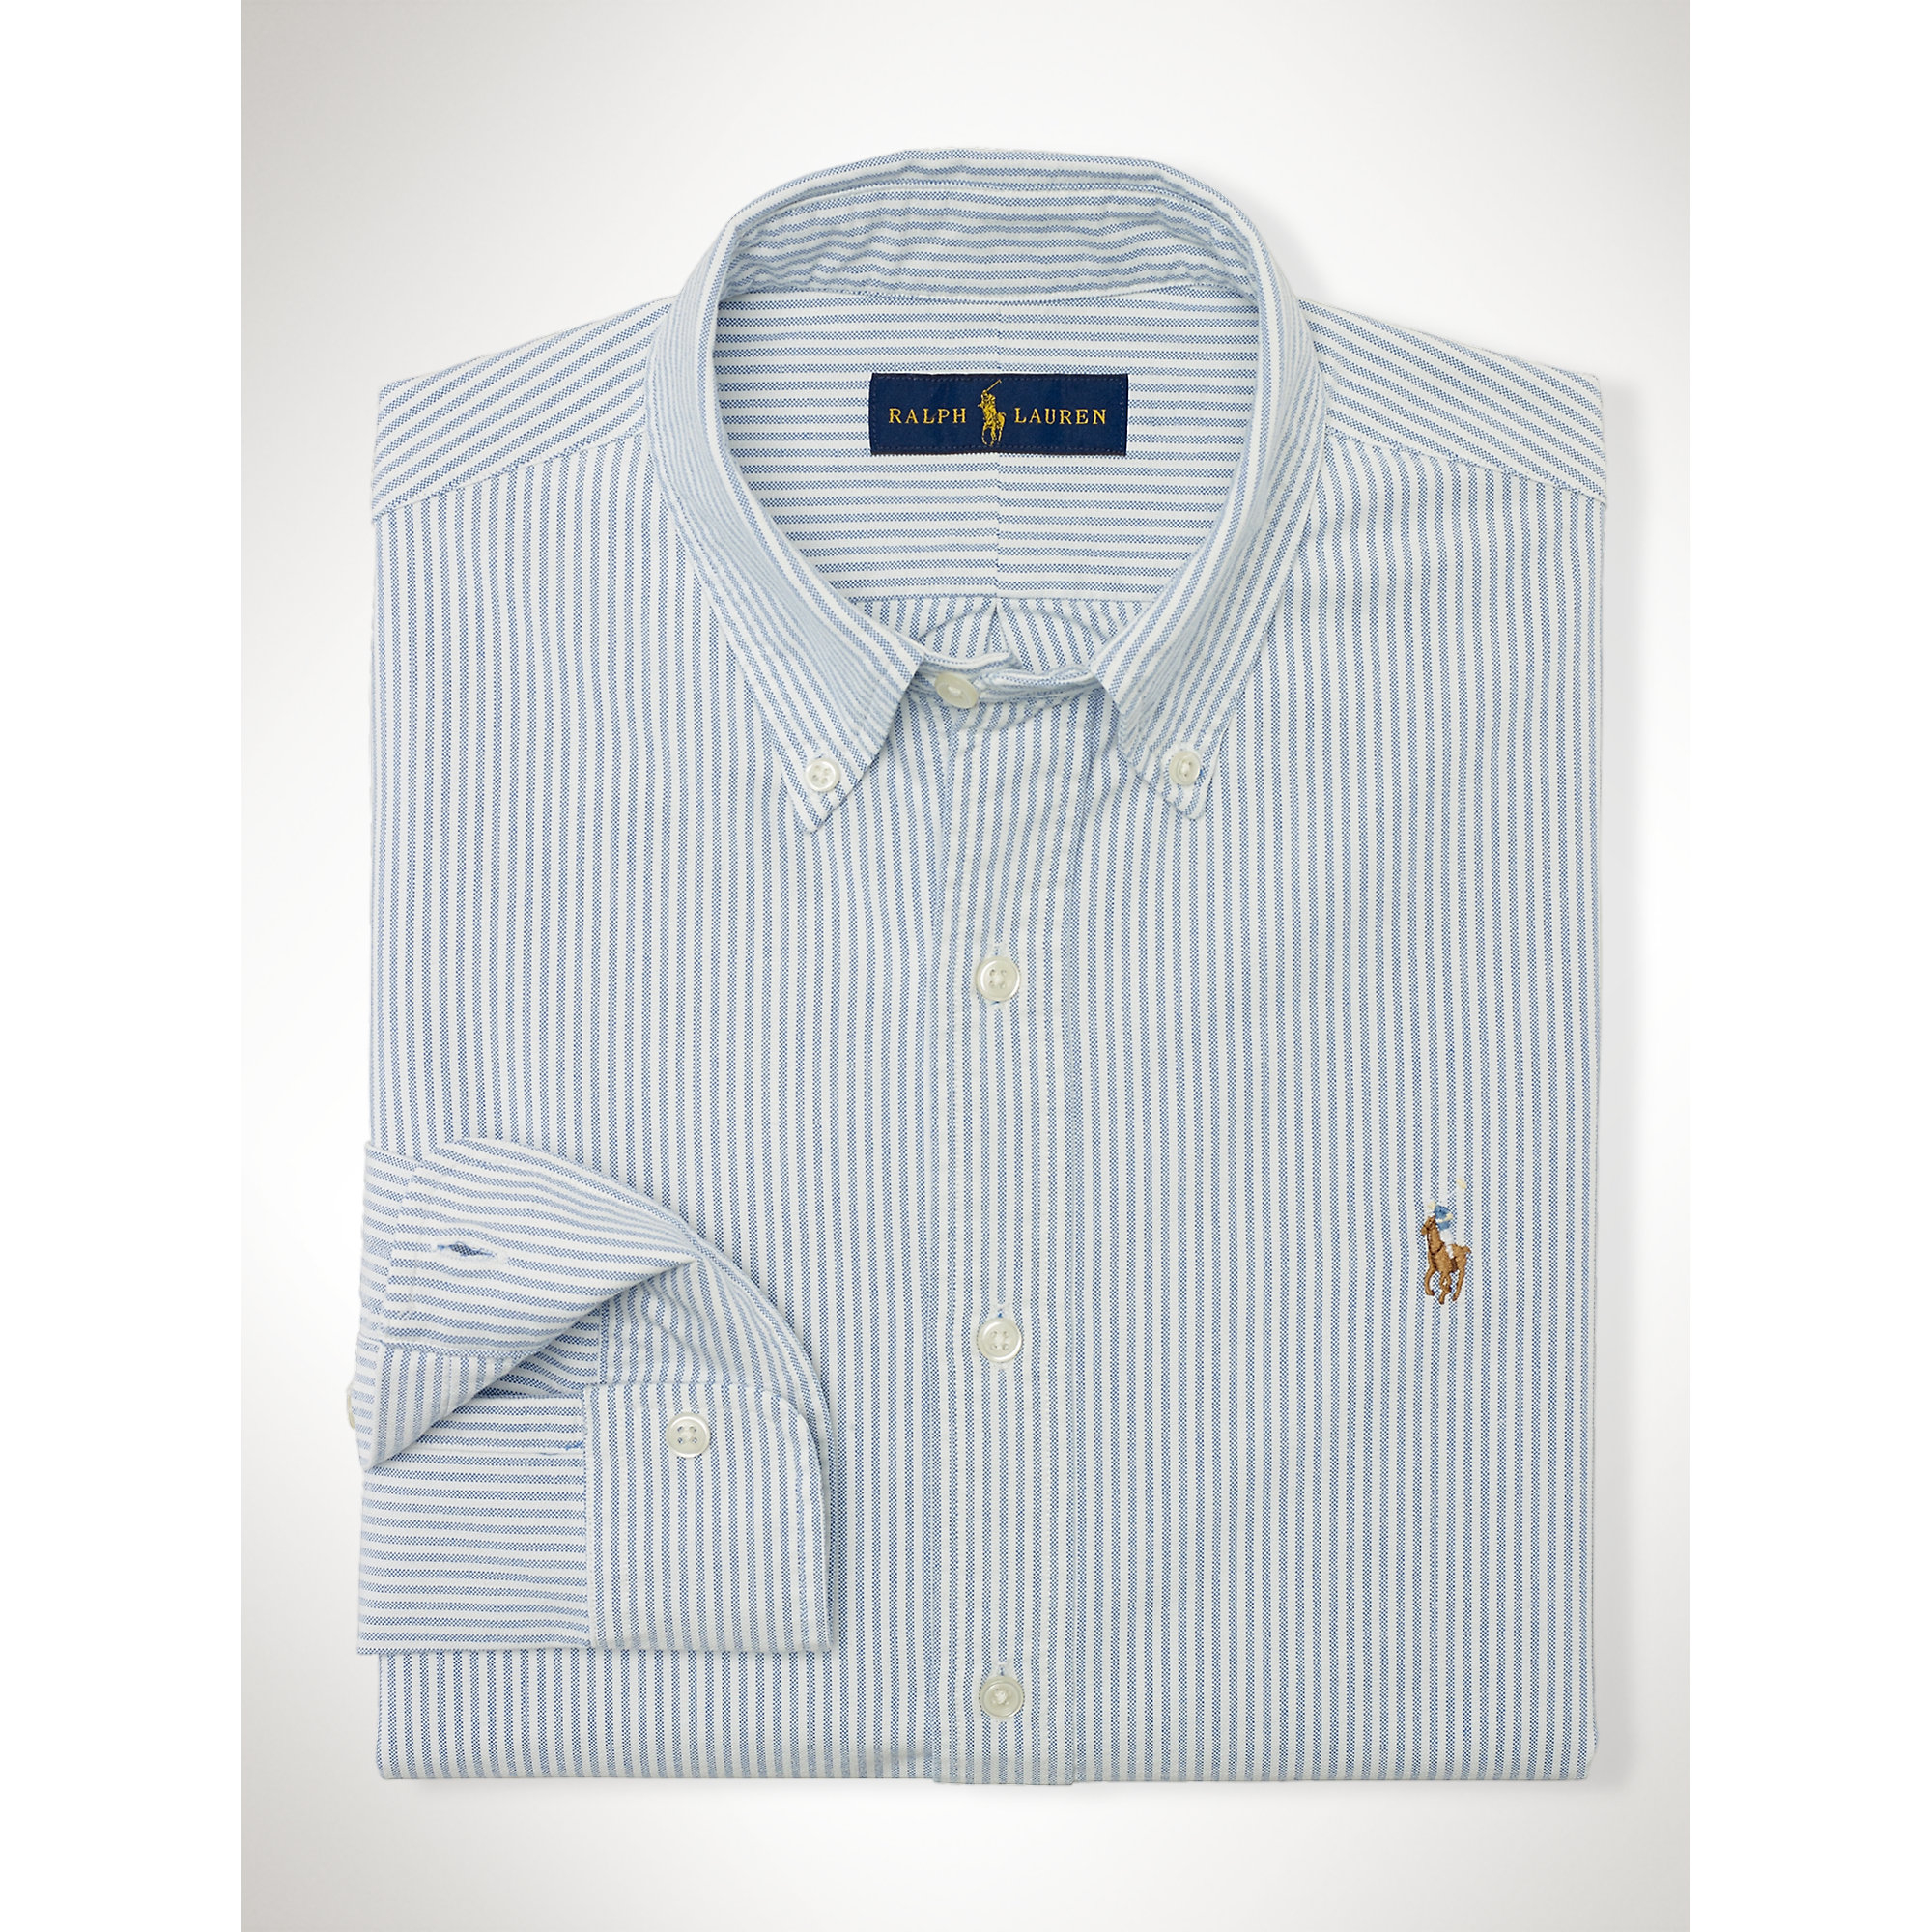 d29379f778 Polo Ralph Lauren Striped Pinpoint Oxford Shirt in Blue for Men - Lyst